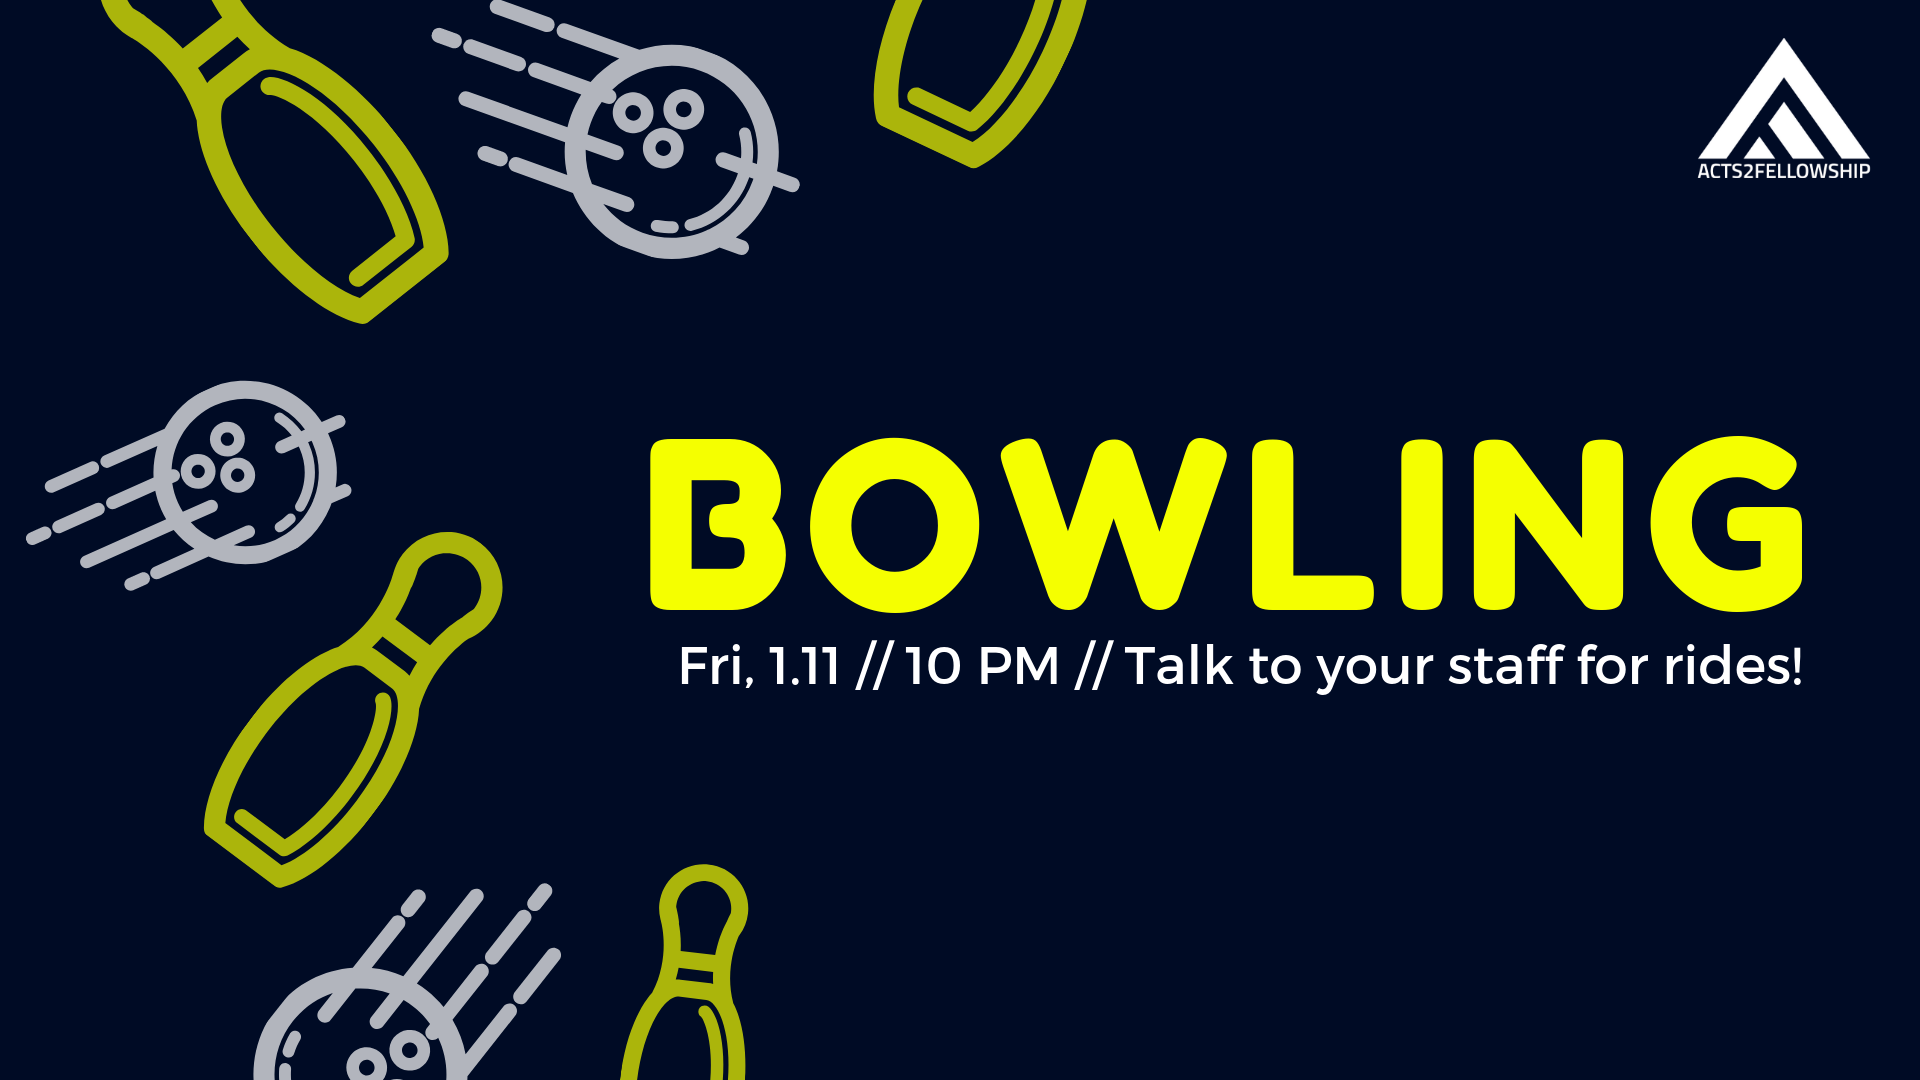 Afterwards we will be going Bowling together! Get your game on and see you at the alley!